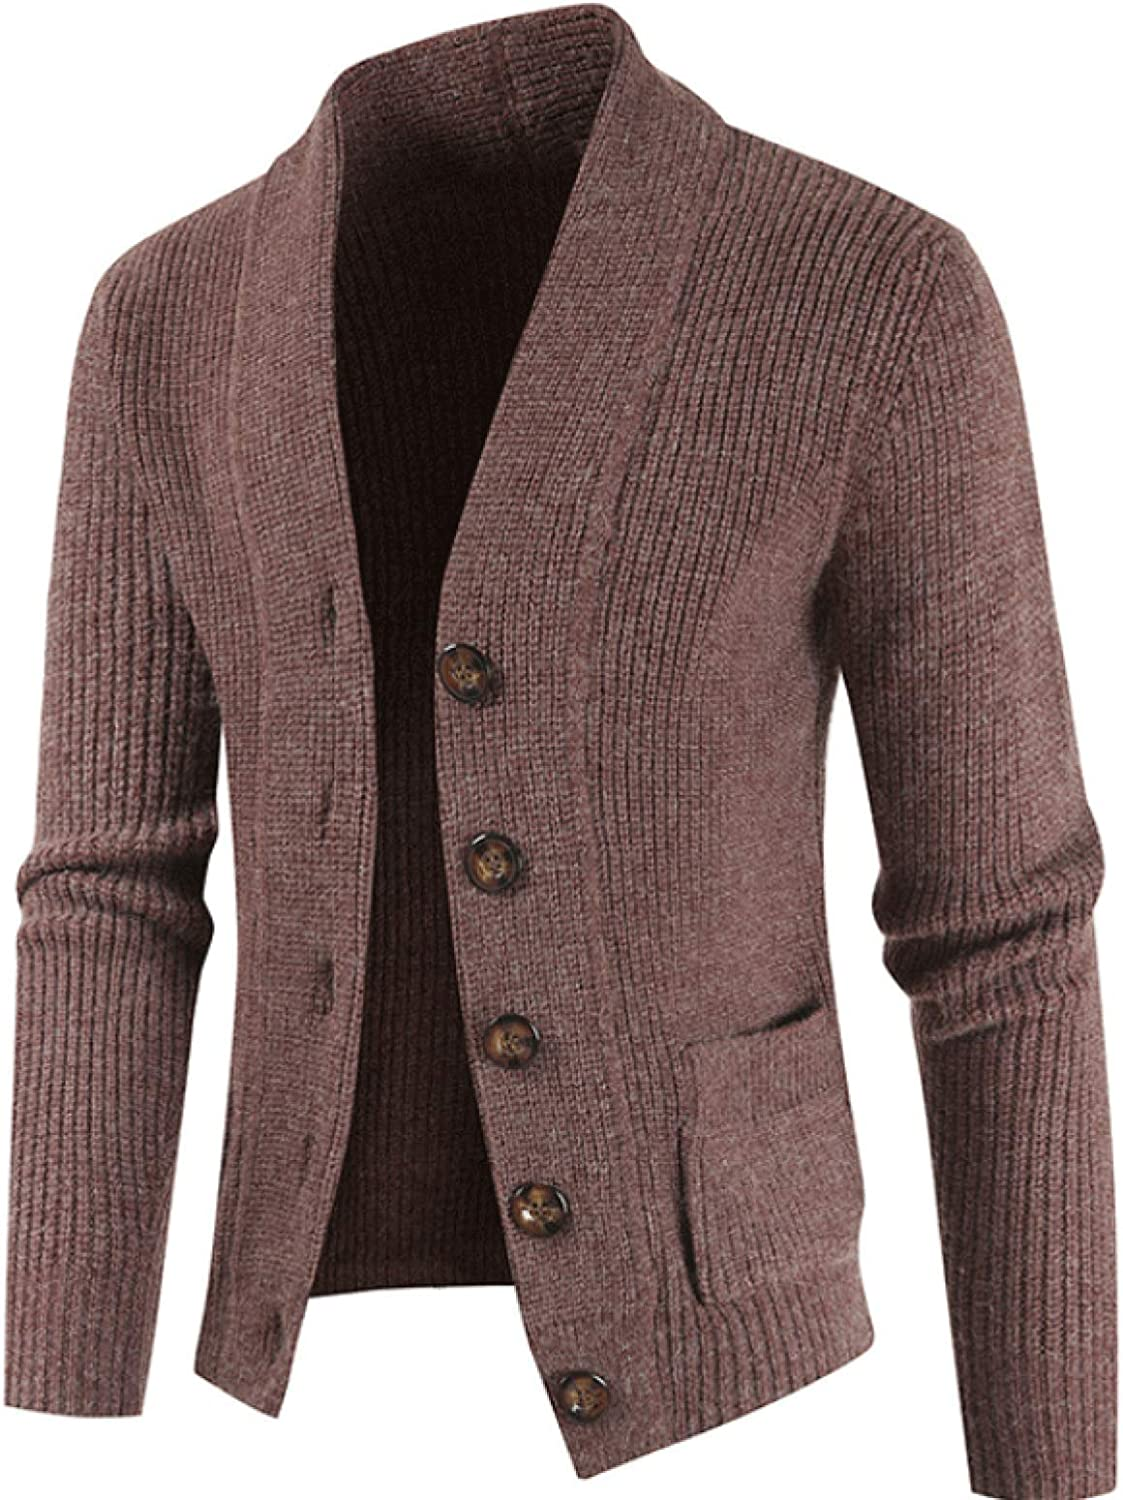 Men's Knitwear Cardigan Autumn and Winter Casual Single-Breasted Lapel